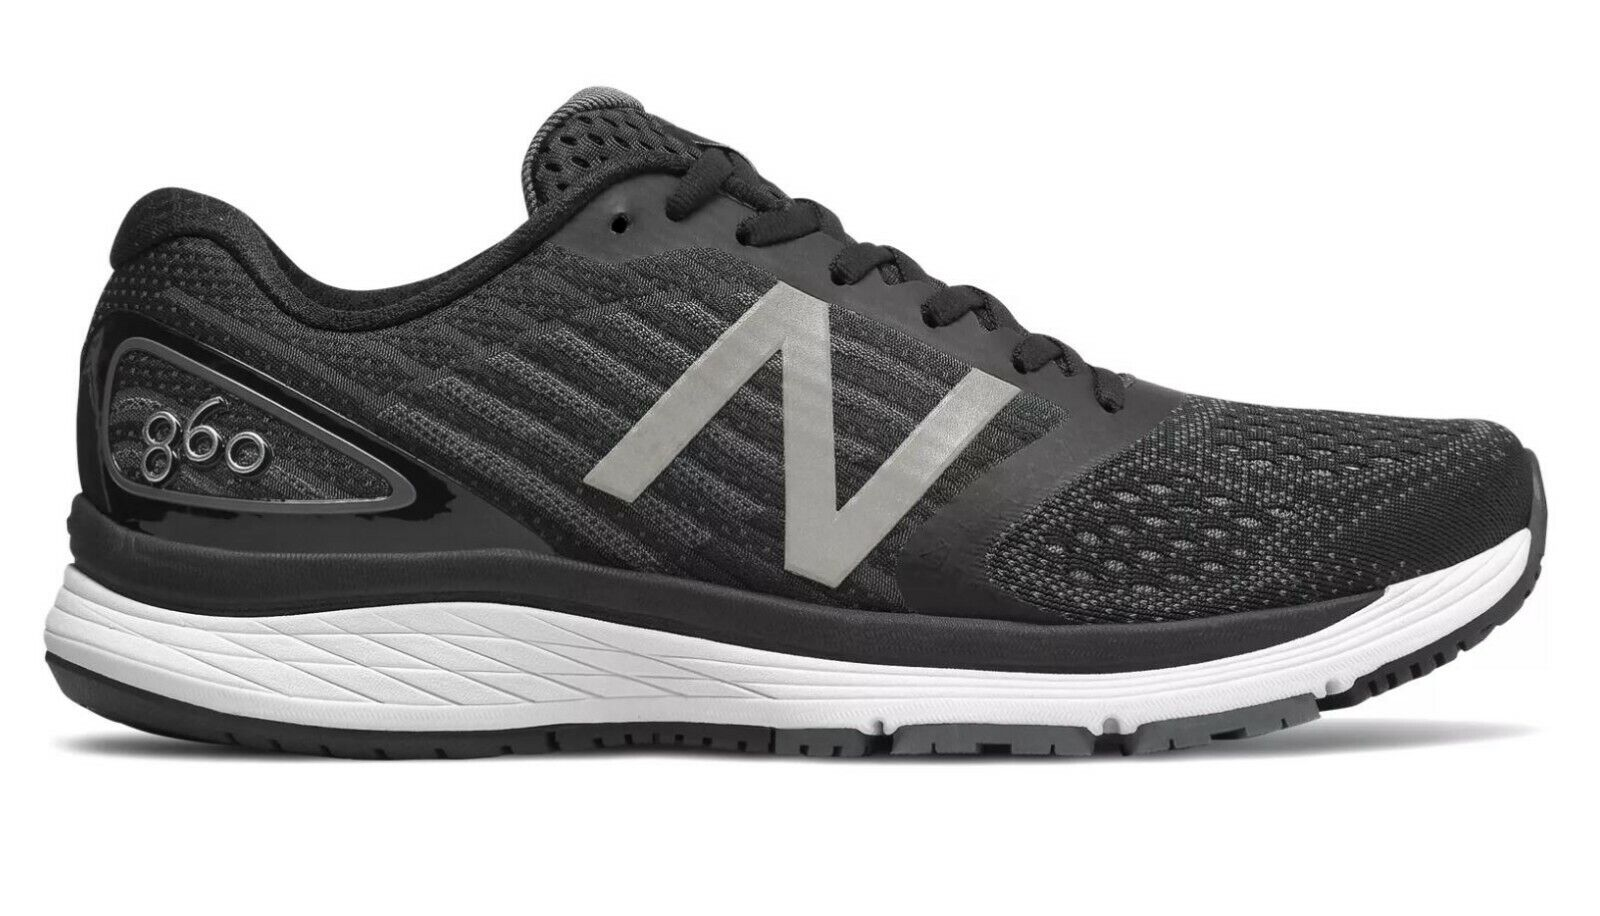 8388fed21bd7a LATEST RELEASE Balance 860 Mens Running shoes (M860BK9) (003) New (2E)  nktfxr8019-Athletic Shoes